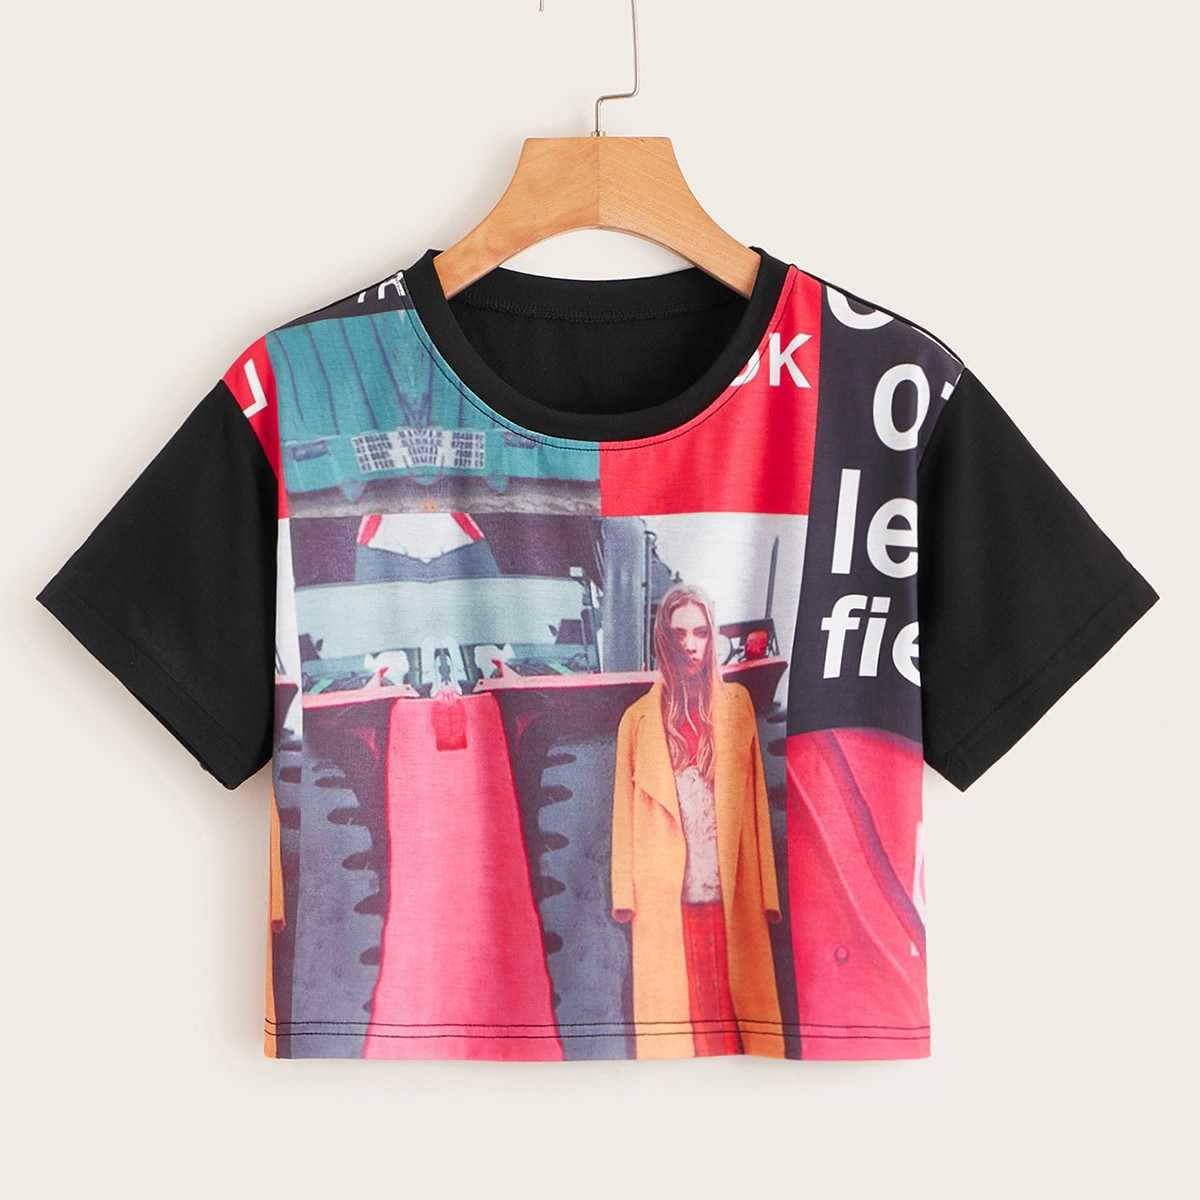 Letter & Figure Print Crop Tee in Multicolor by ROMWE on GOOFASH